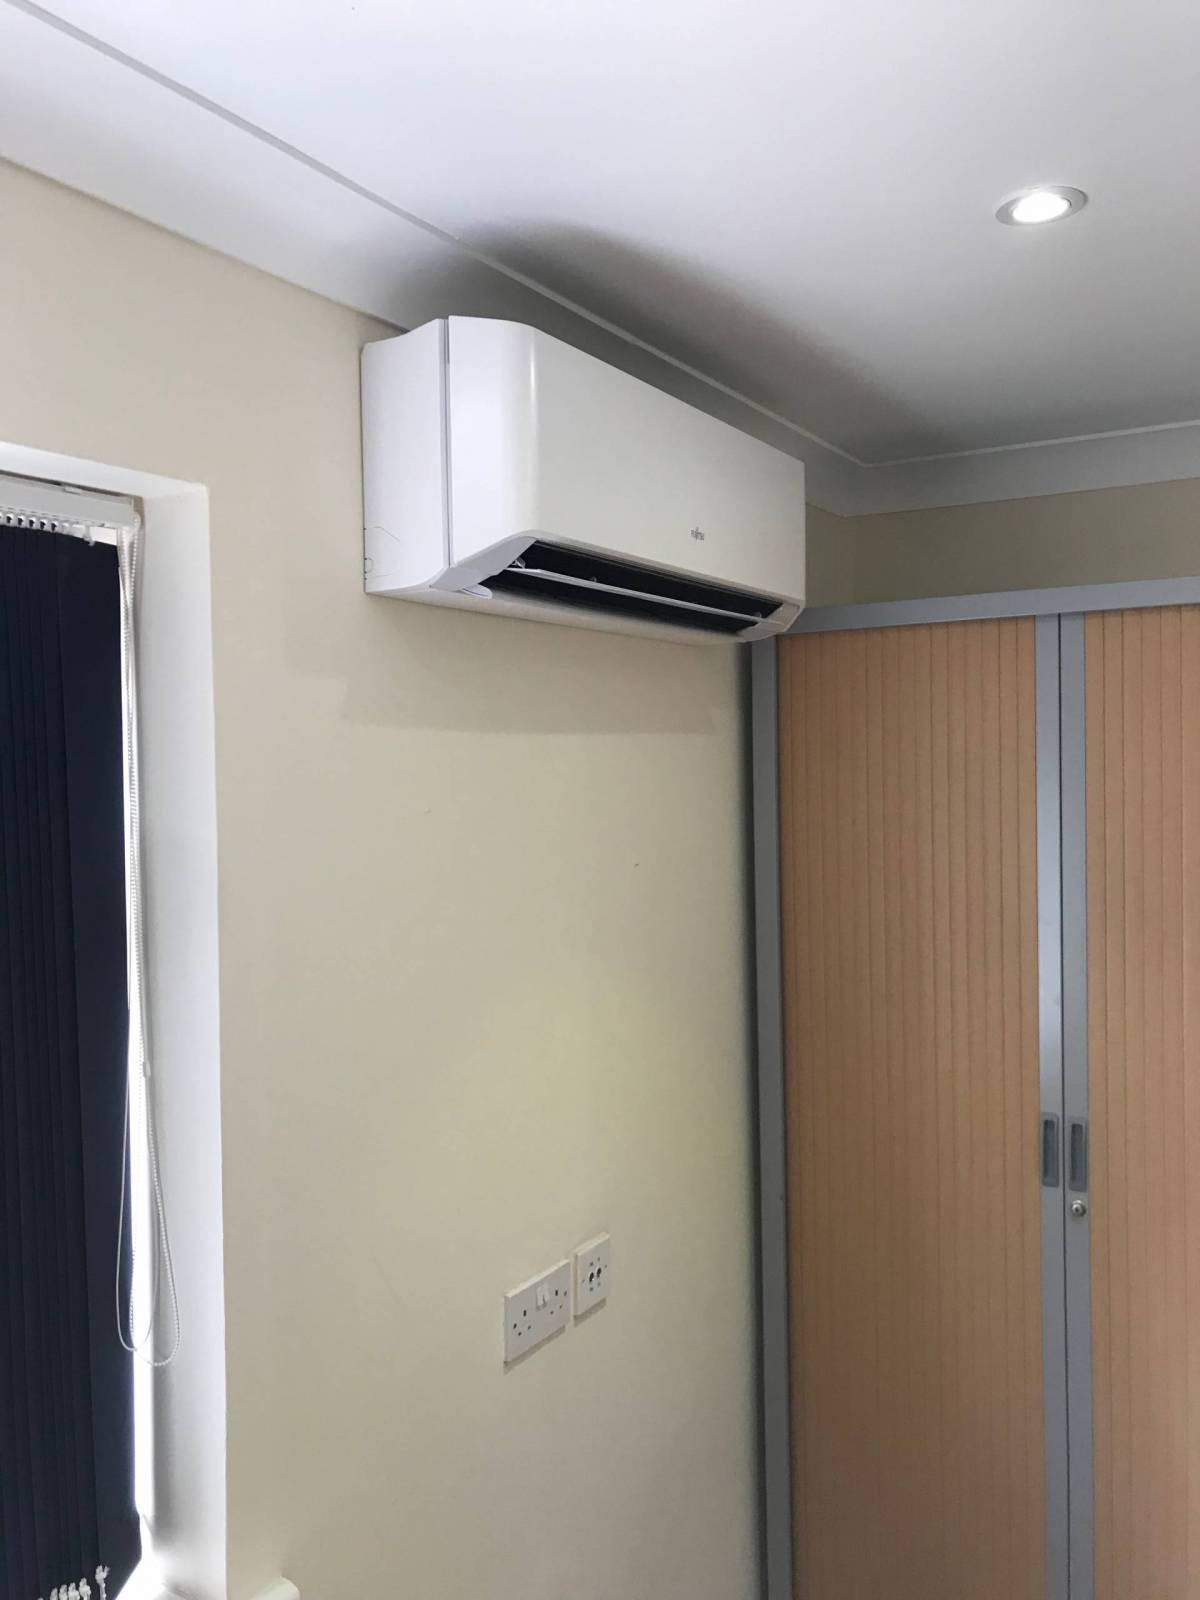 air-conditioning-london-residential-air-conditioning-london